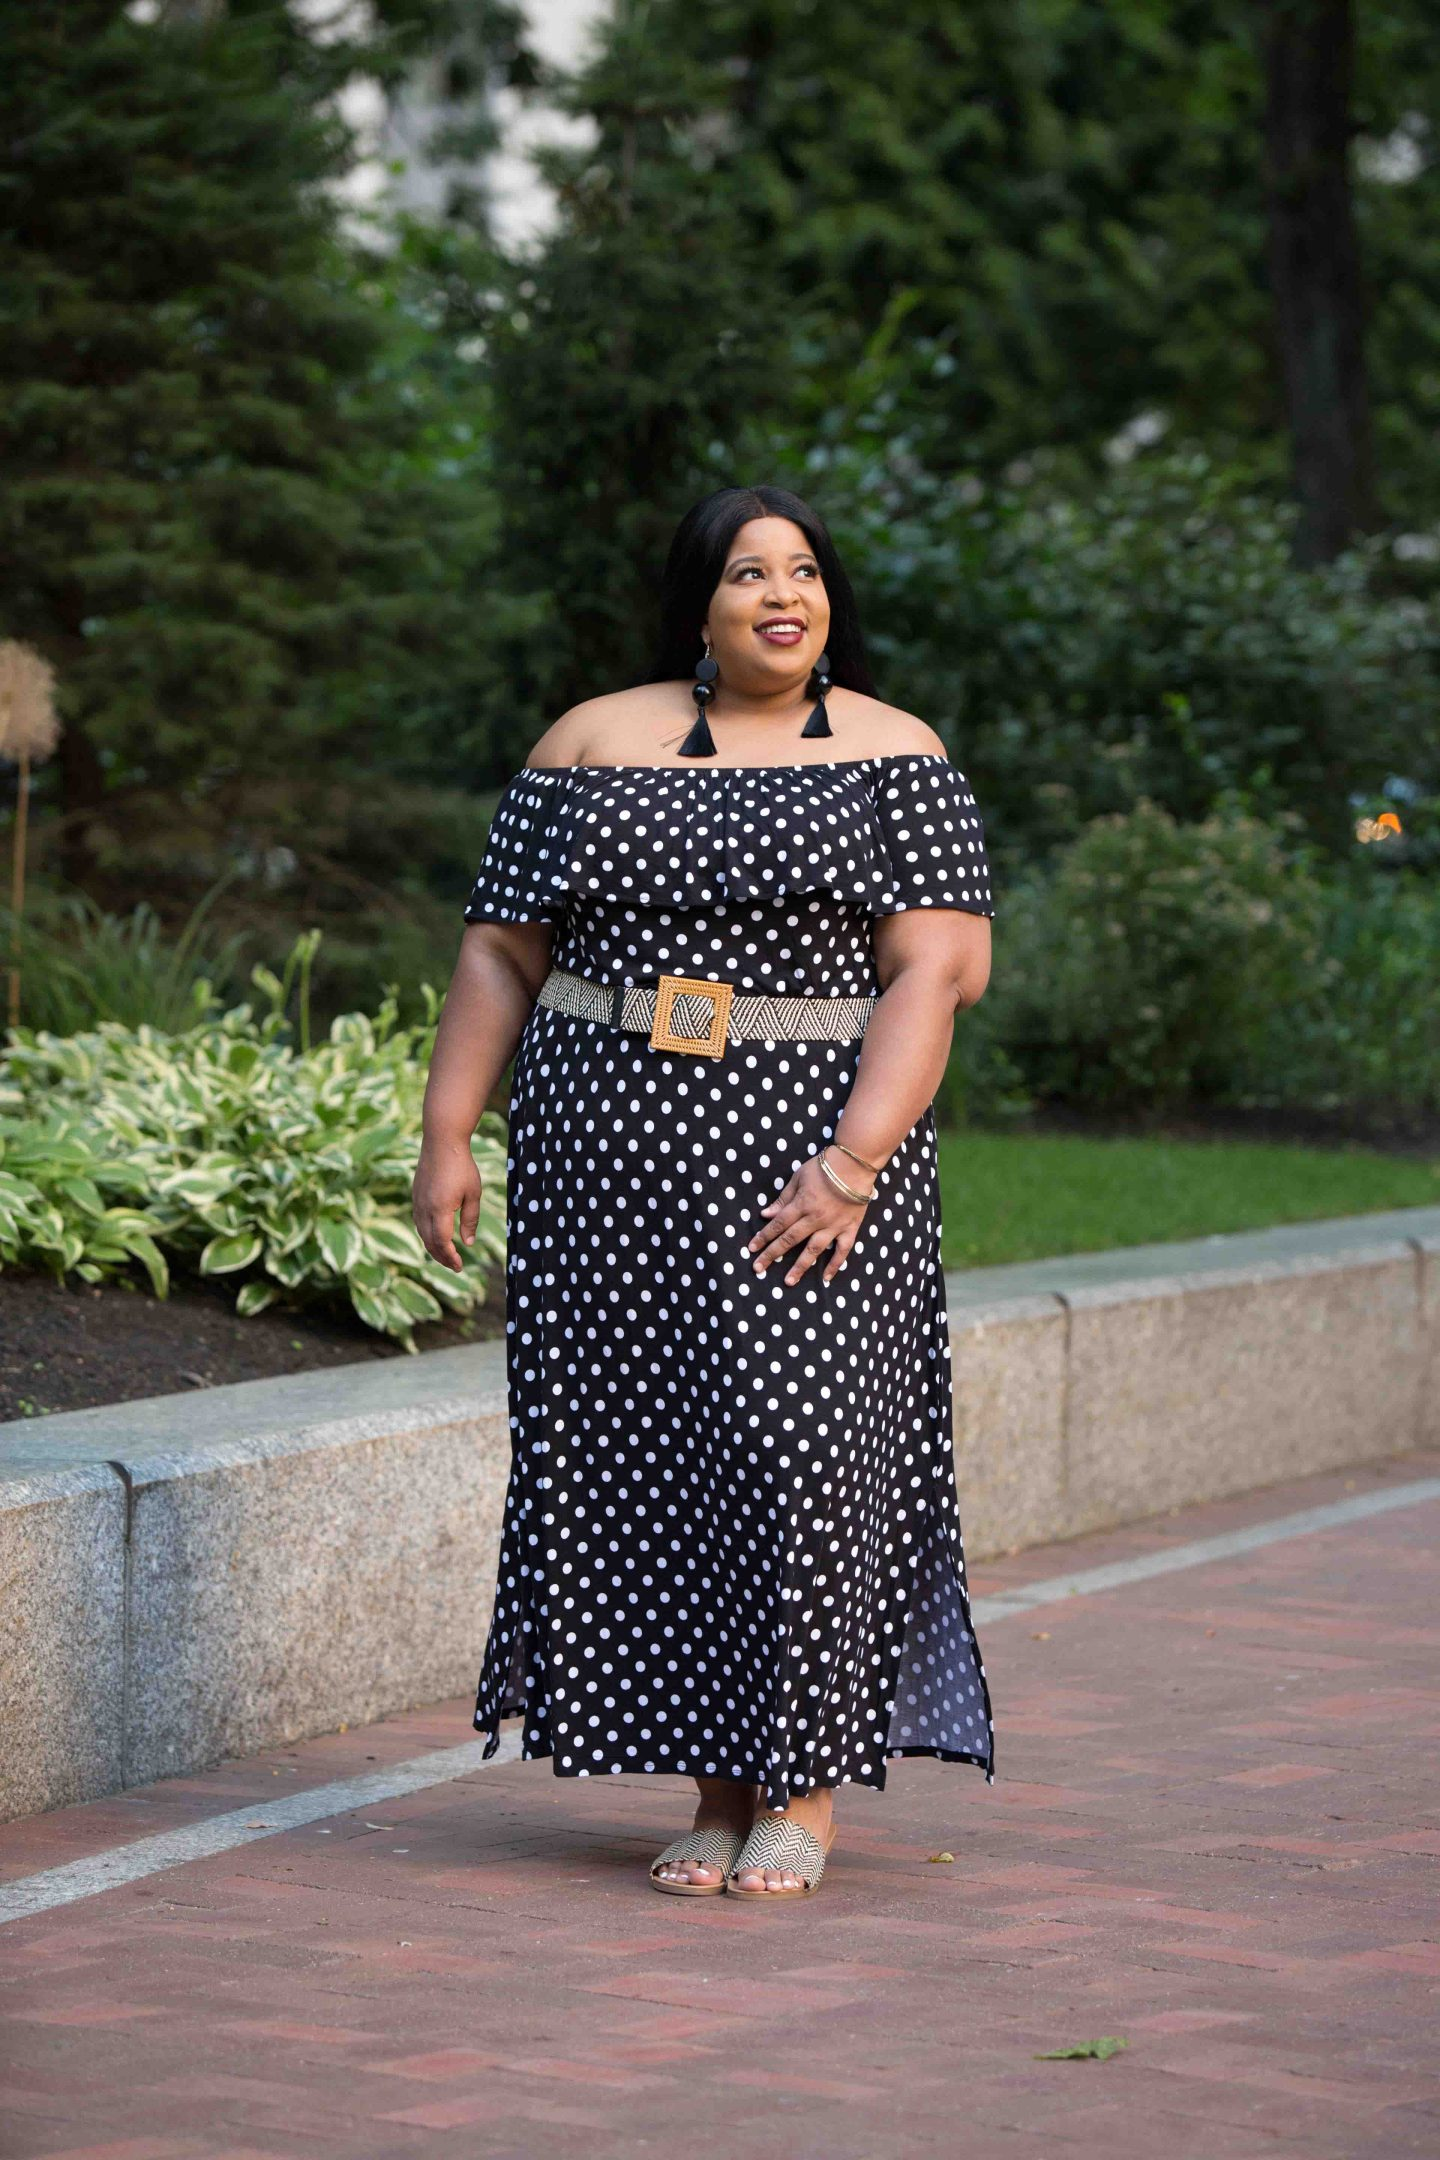 Summer Lane Bryant